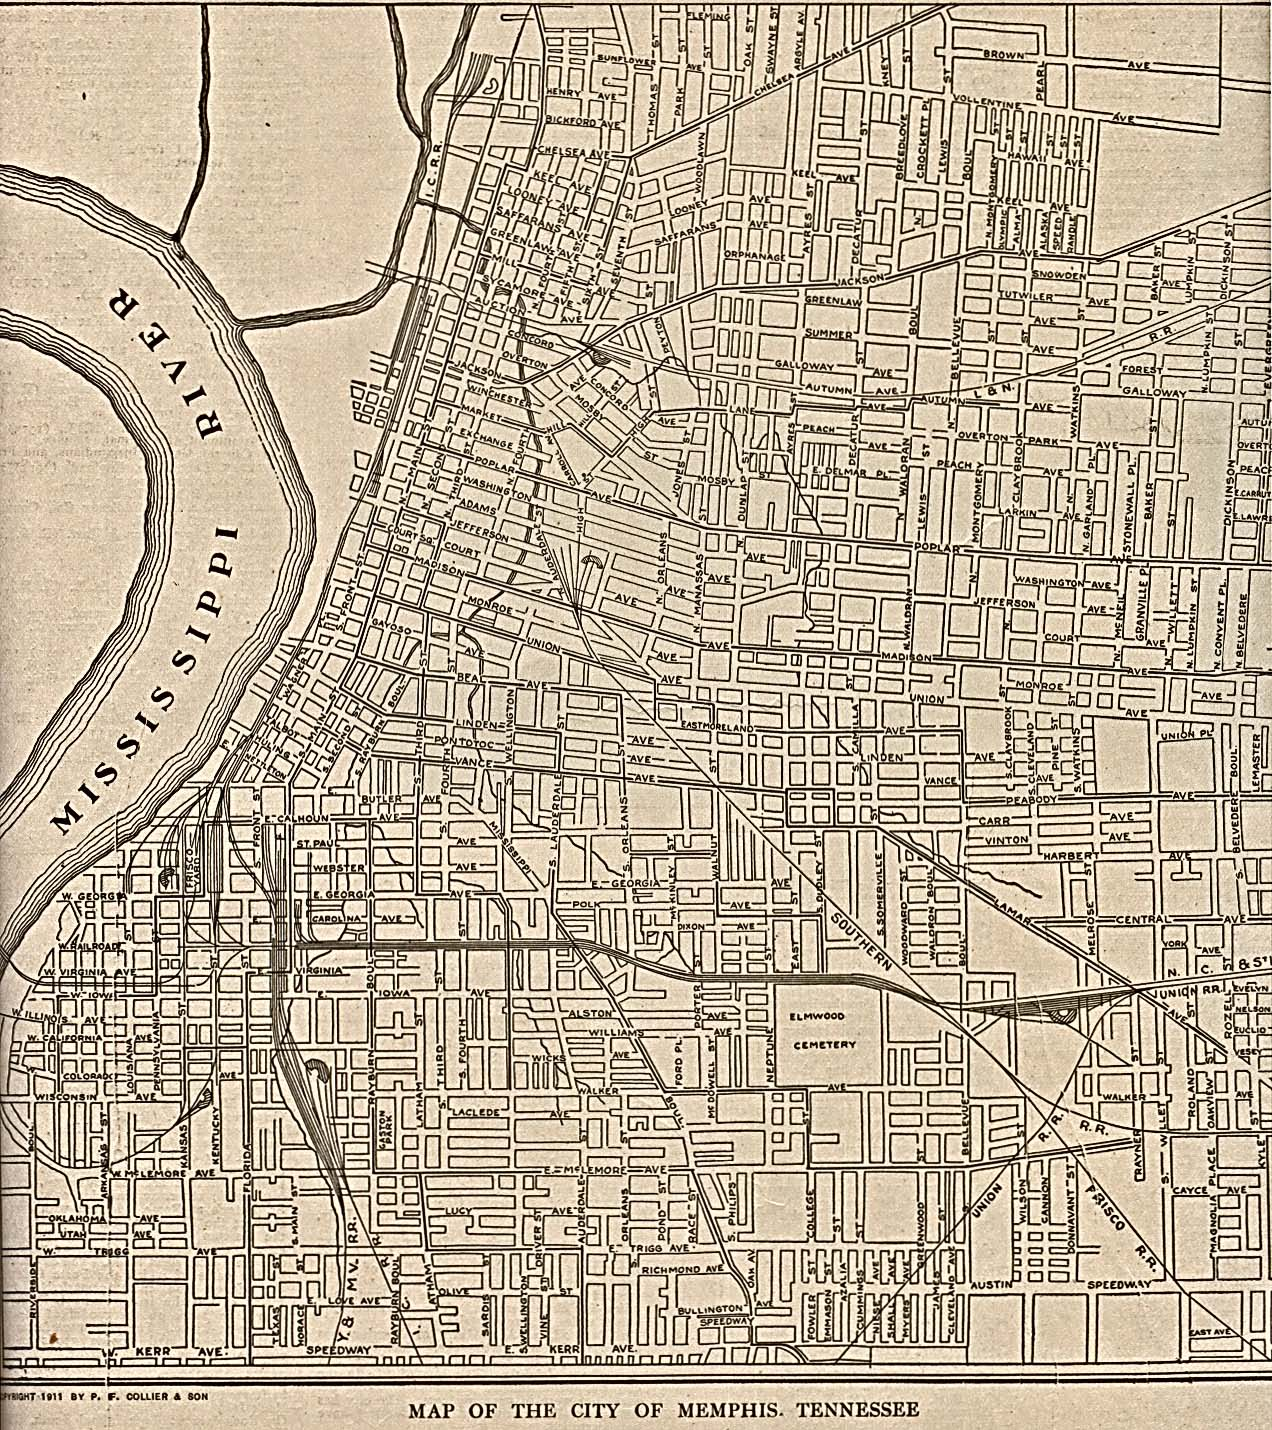 Historical Maps of U.S Cities. Memphis Tennessee 1911 The New Encyclopedic Atlas and Gazetteer of the World. New York: P.F. Collier & Son, 1917 (645K)